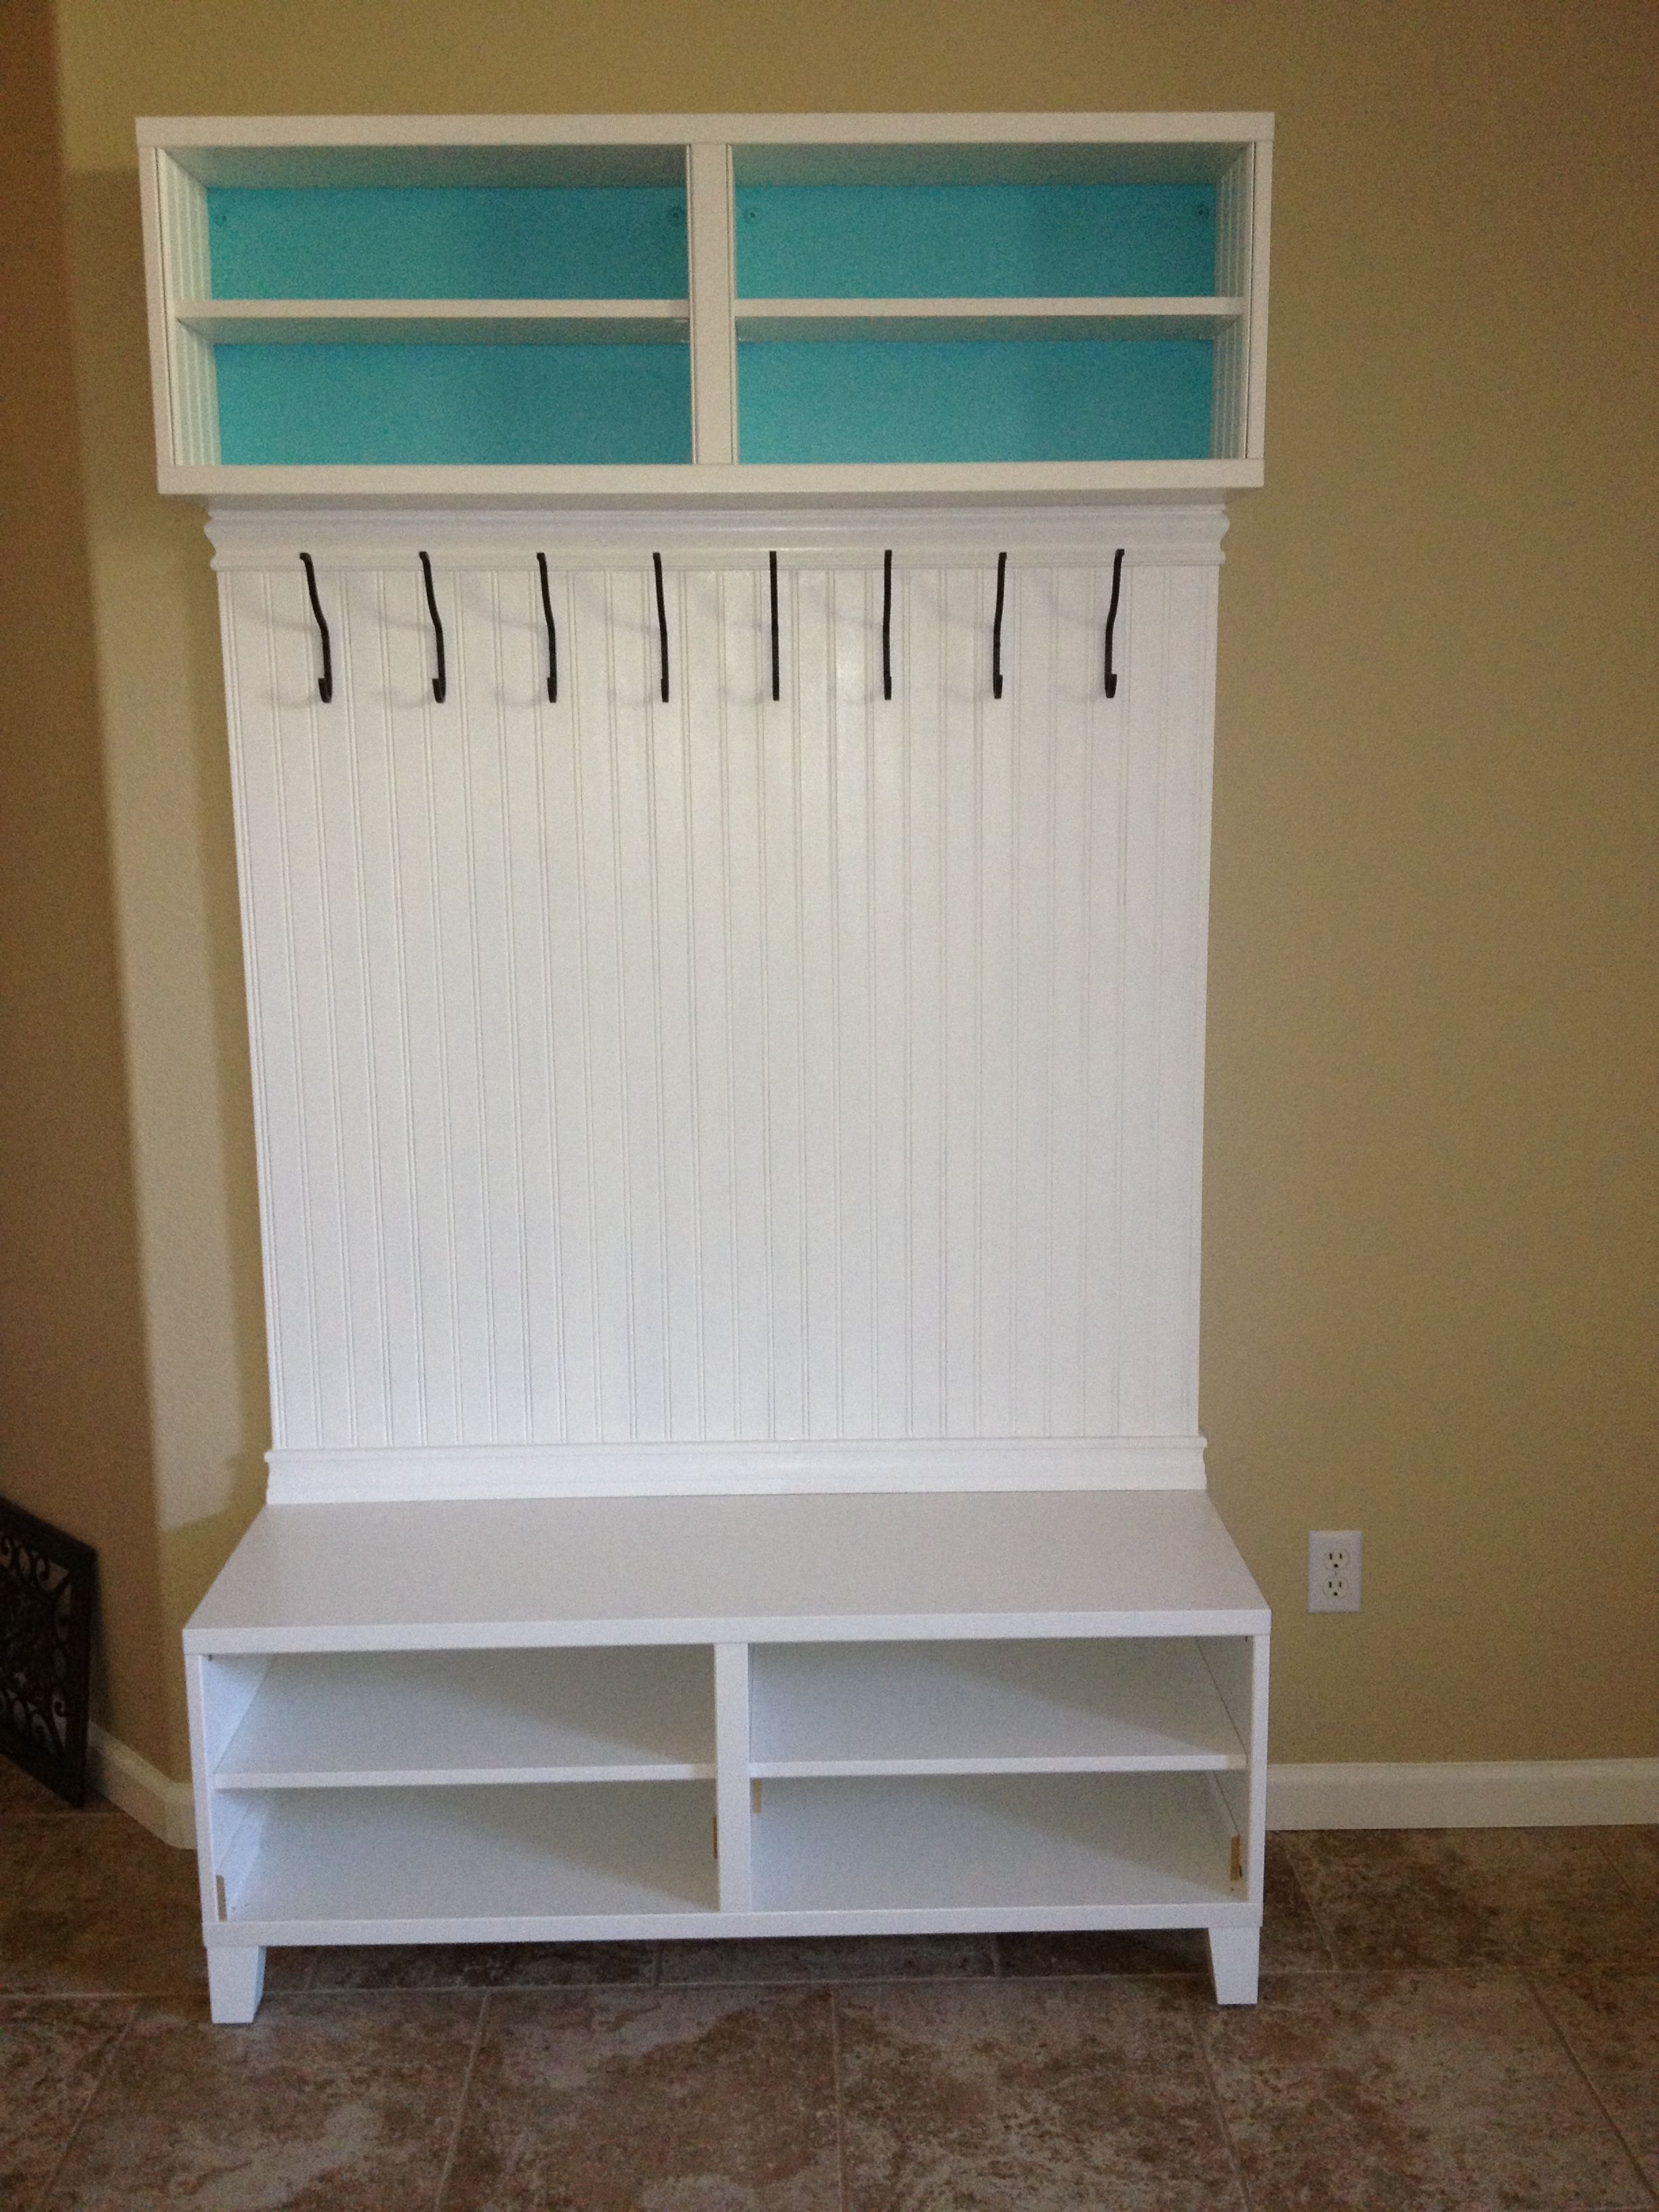 entryway storage unit made from 2 ikea besta media units hooks from ikea and bead board from. Black Bedroom Furniture Sets. Home Design Ideas